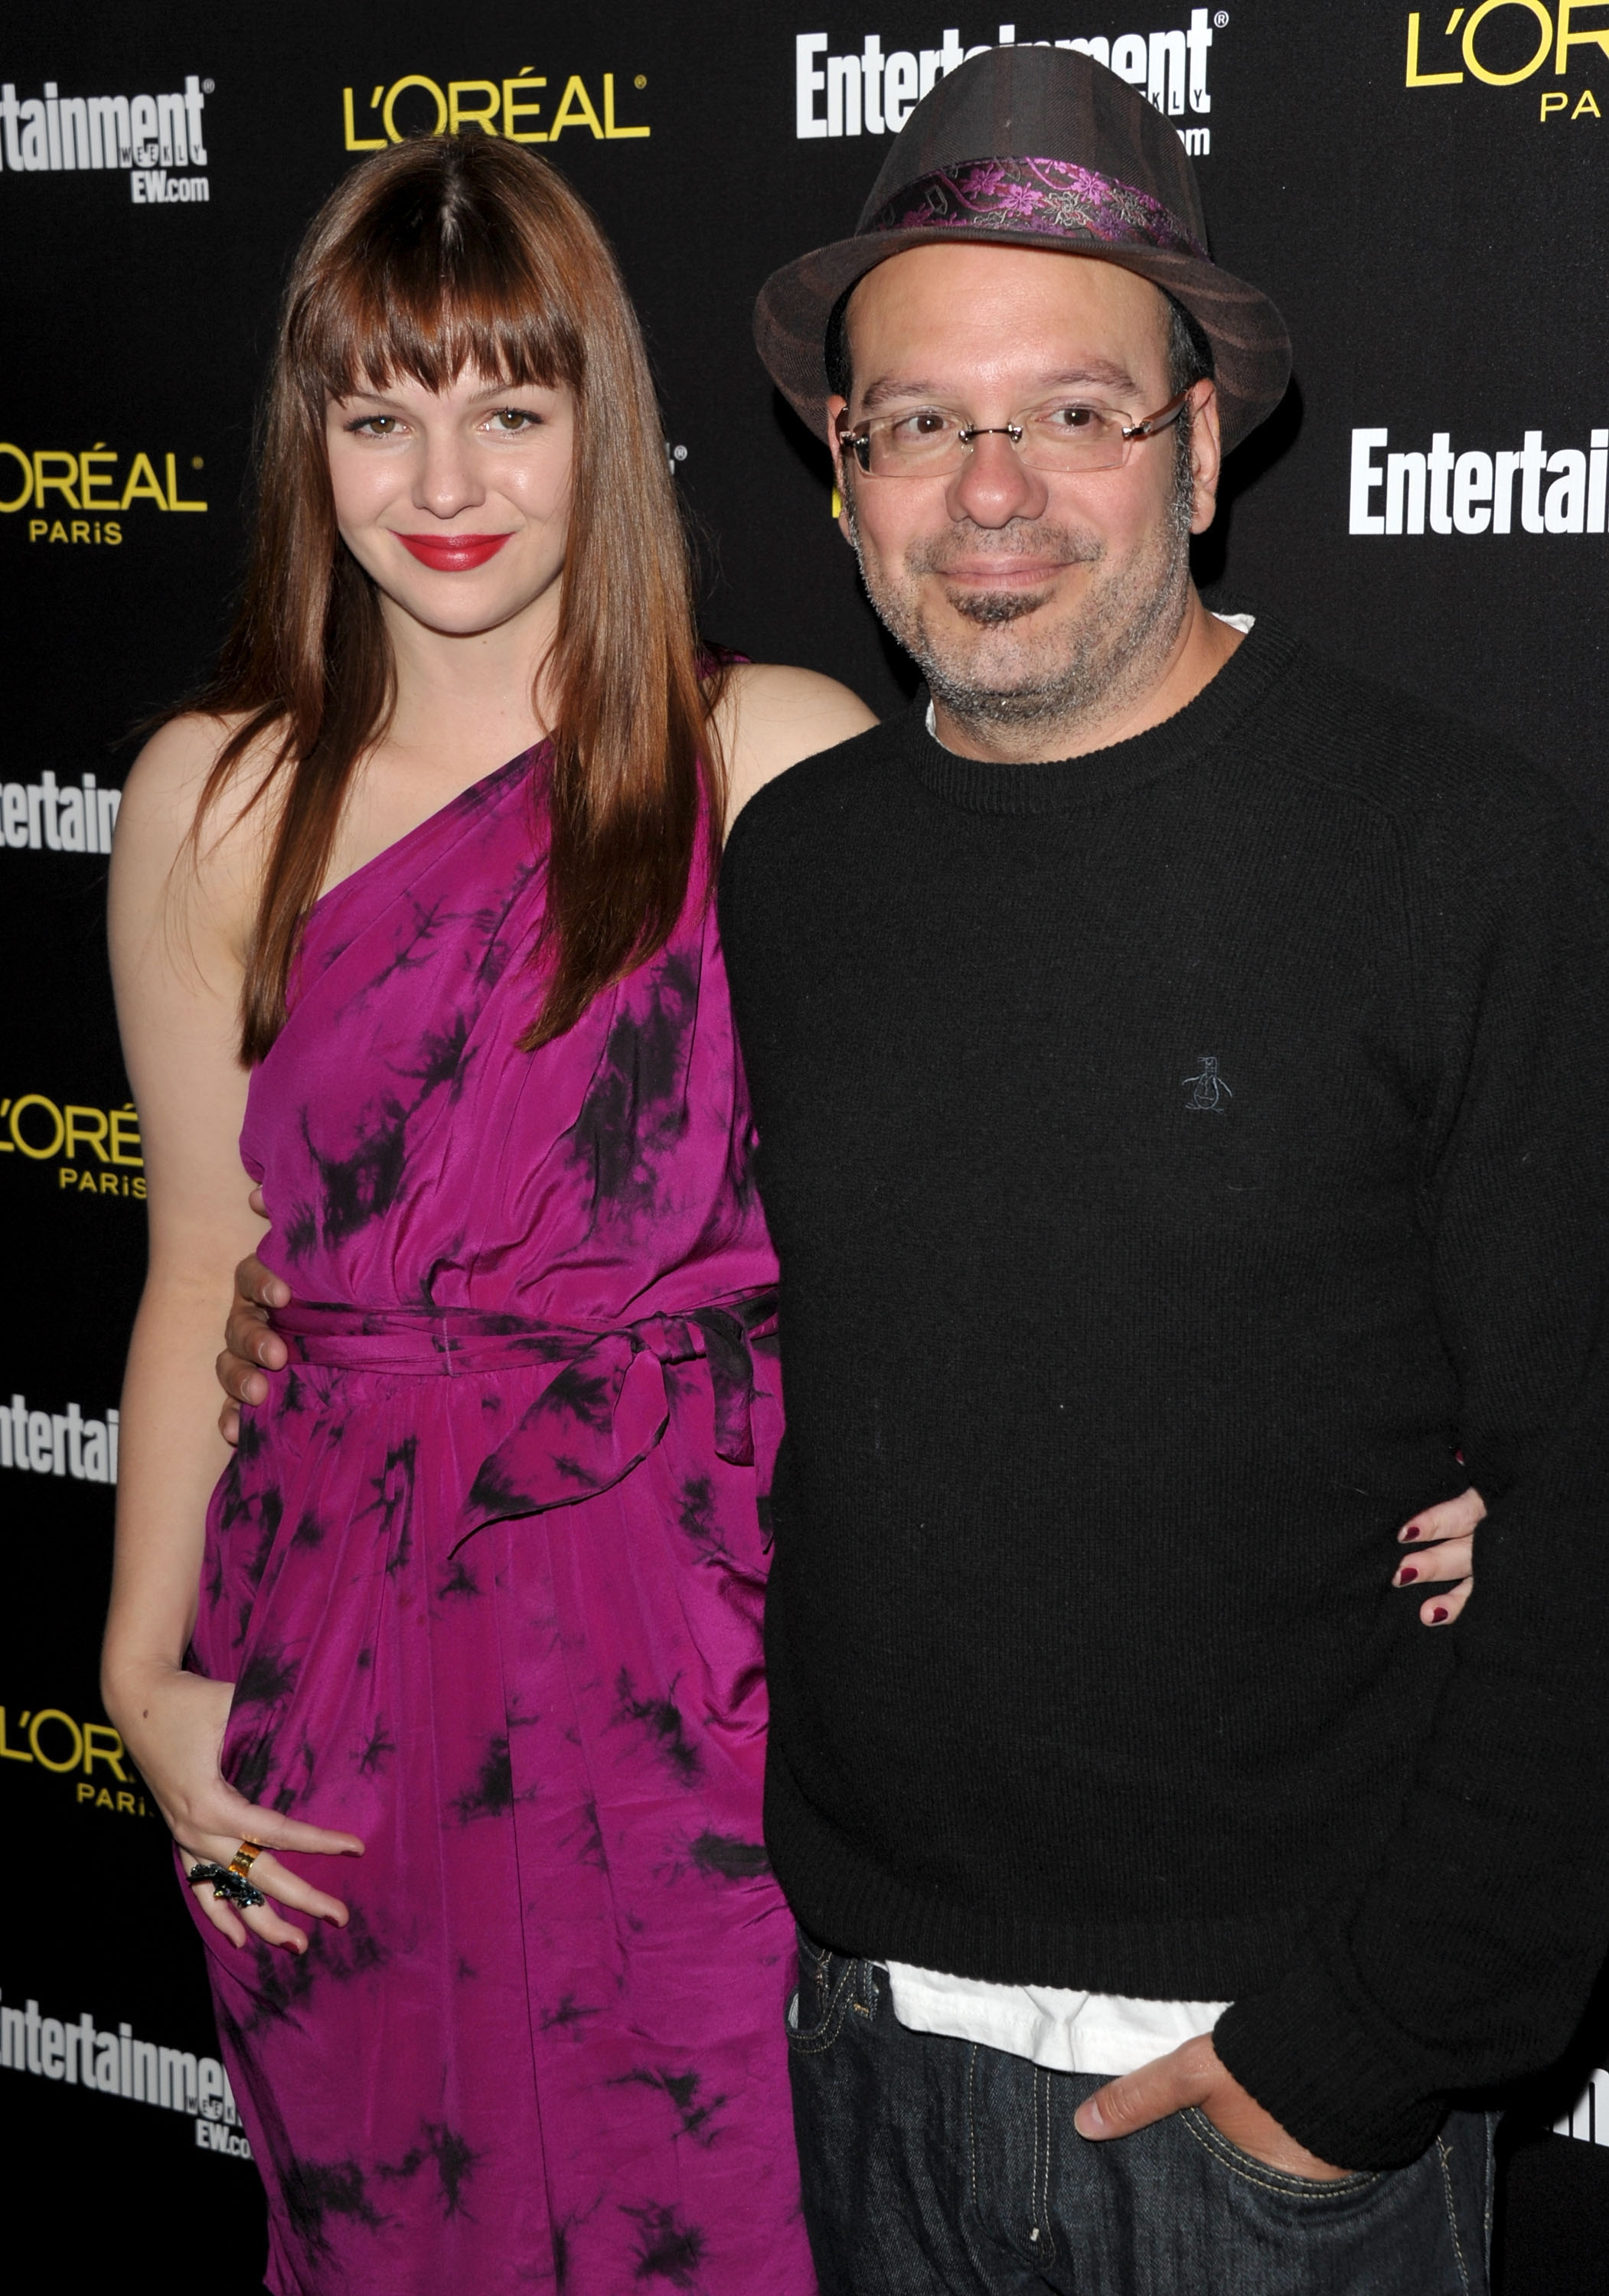 Amber Tamblyn Wedding.Amber Tamblyn 28 Engaged To David Cross 47 Access Online